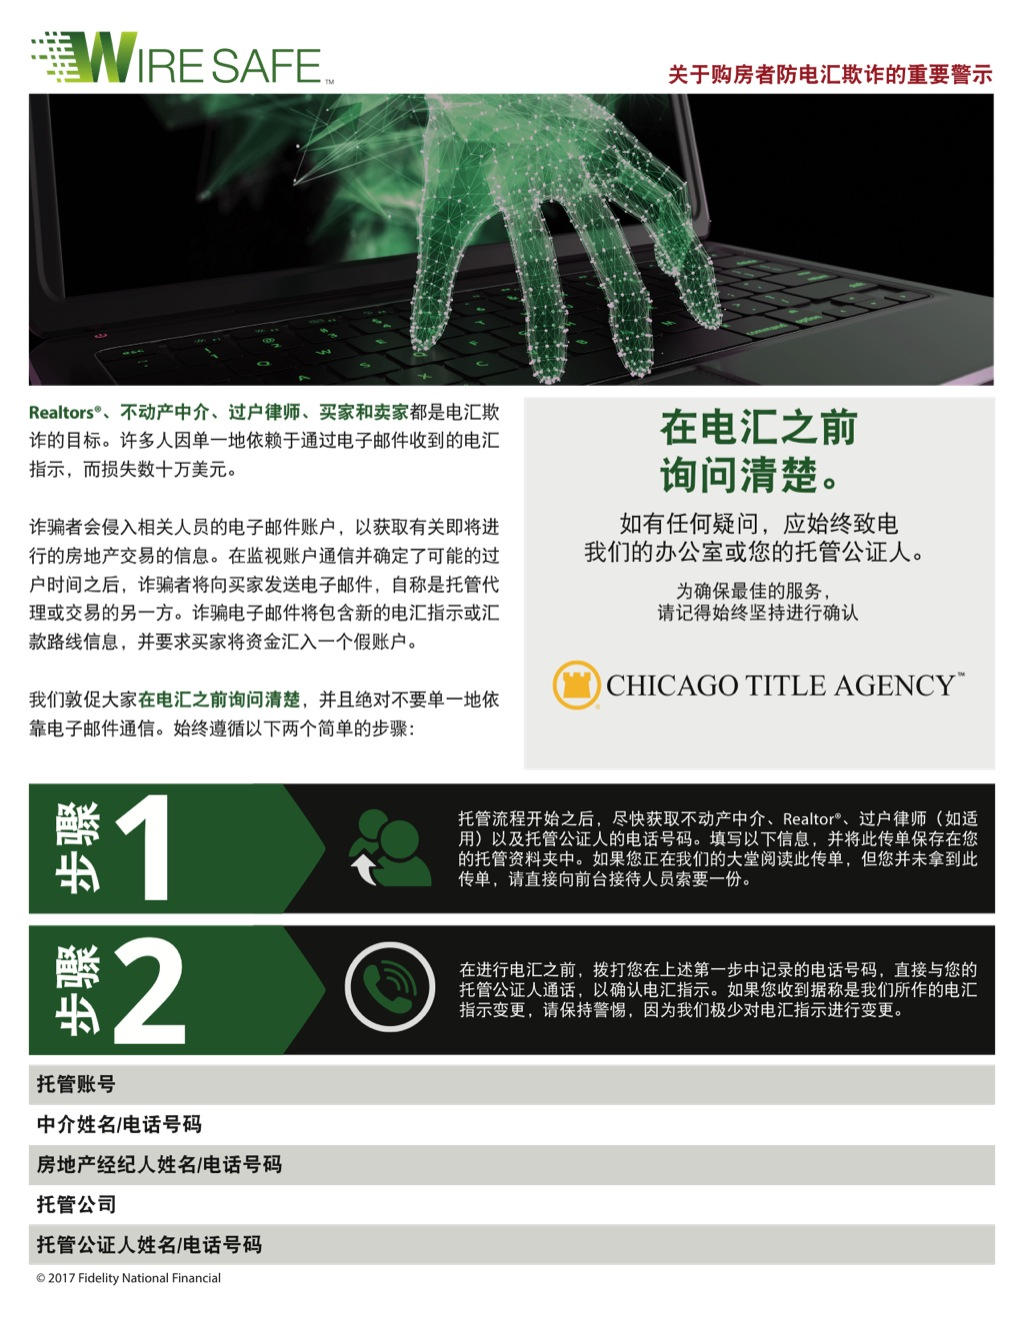 Corefact Wire Safe Buyer Flyer - Chinese - CTA